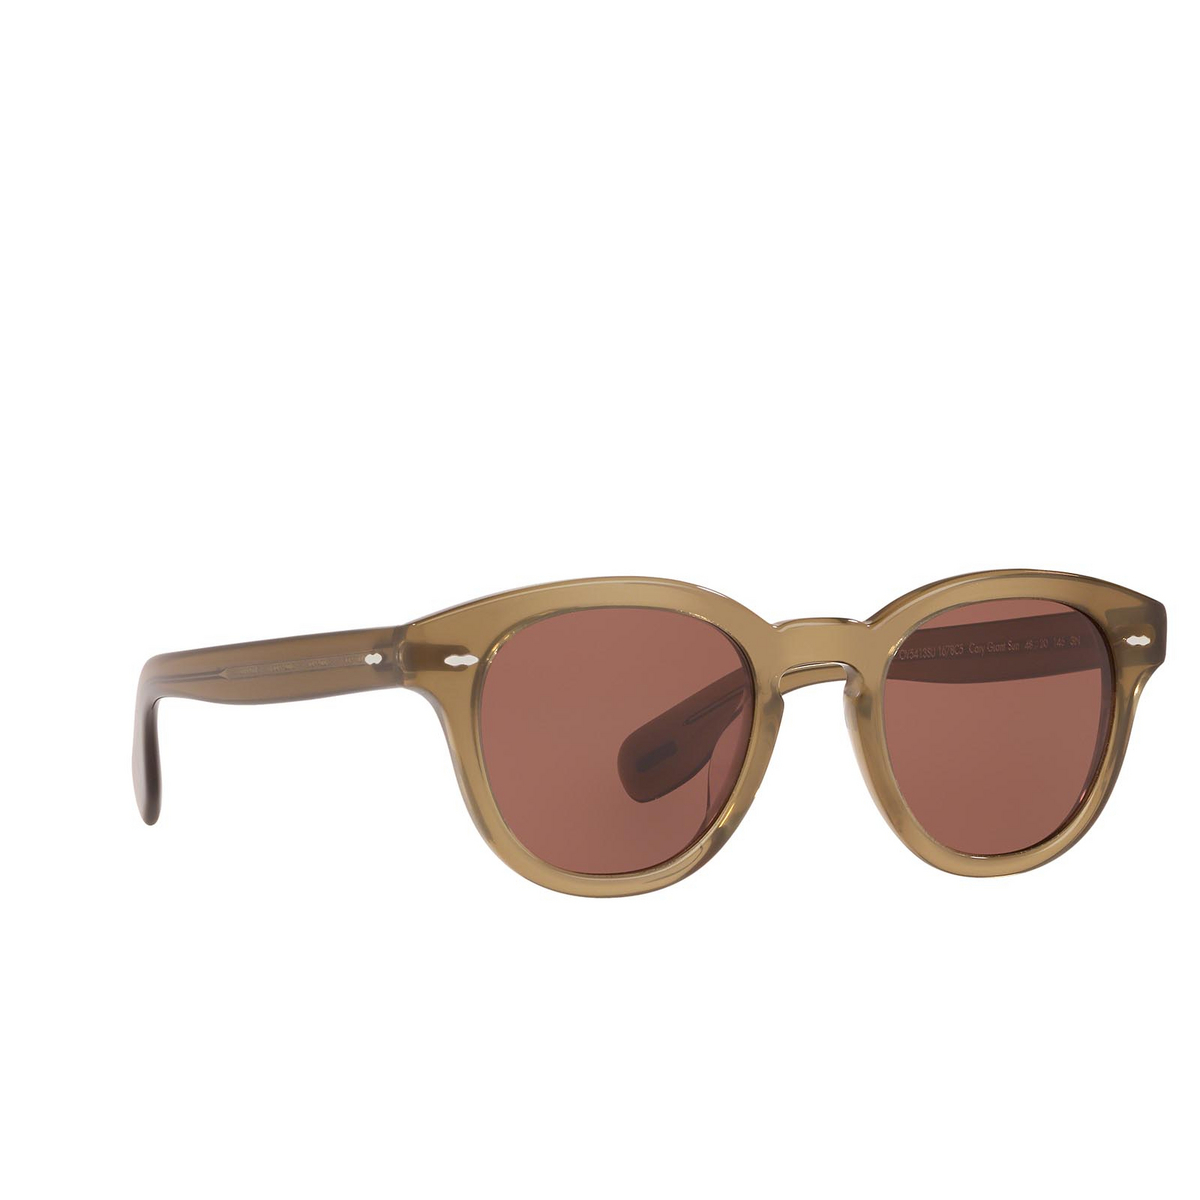 Oliver Peoples® : Cary Grant Sun OV5413SU color Dusty Olive 1678C5.